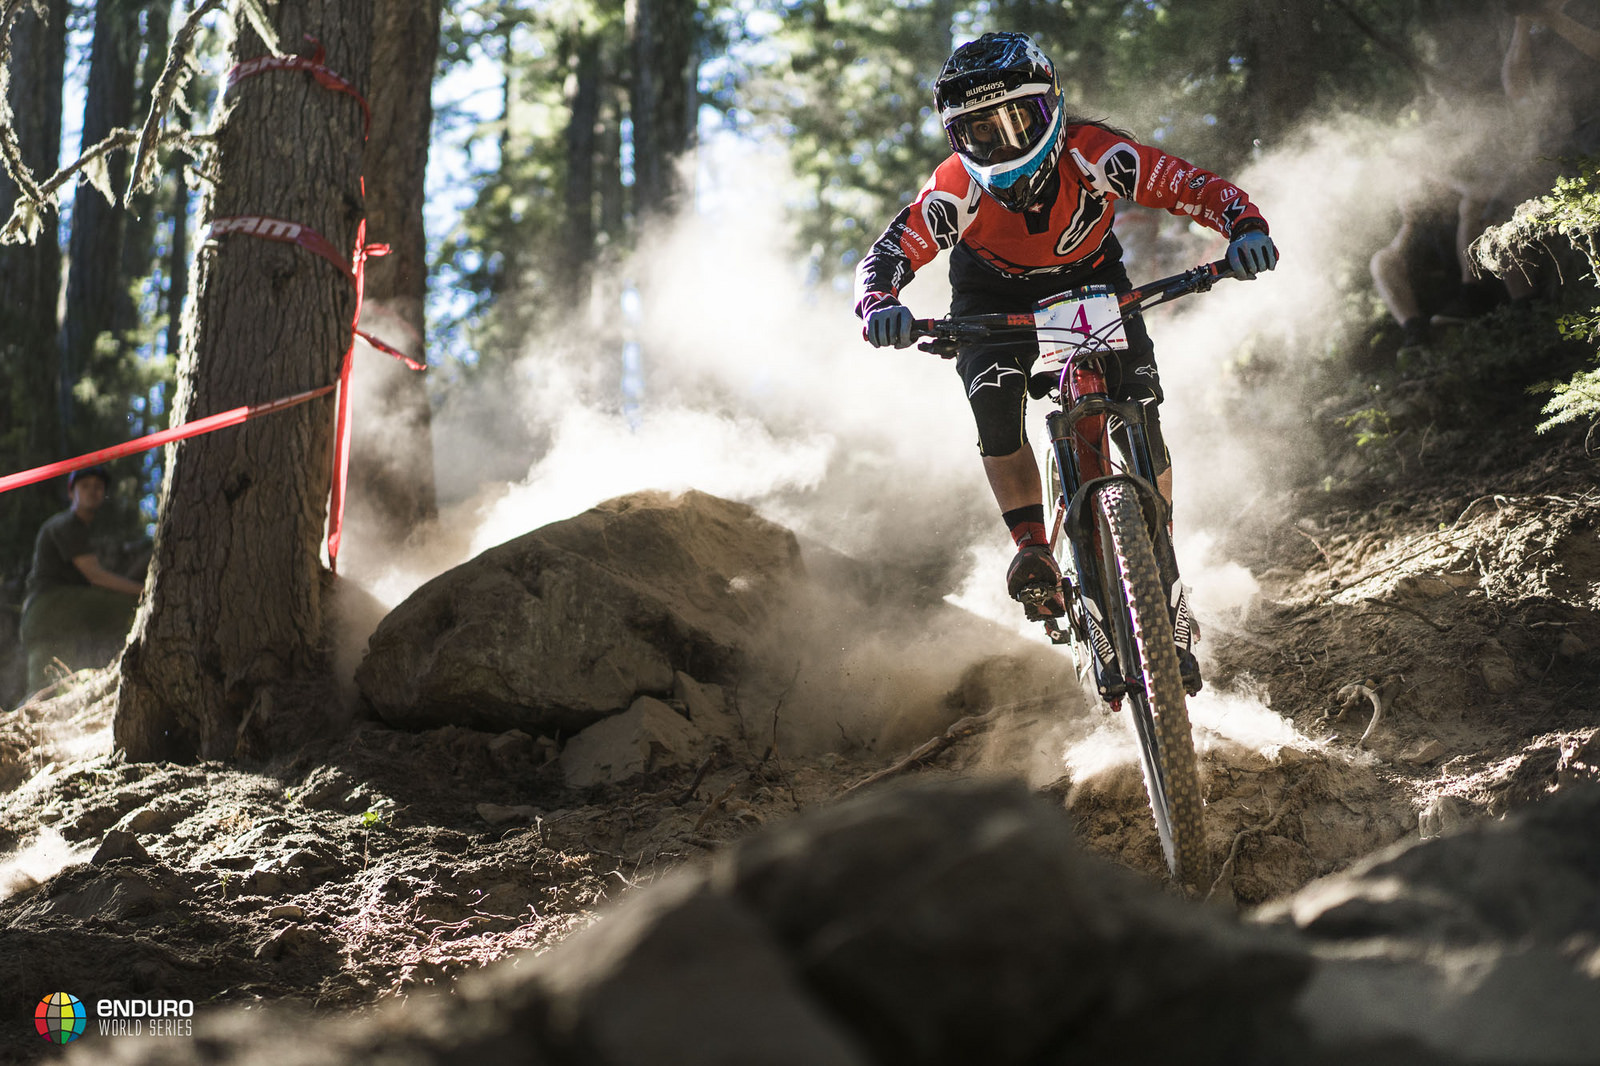 Isabeau Courdurier had the lead coming into the final stage but lost out to Ravanel. Photo courtesy Enduro World Series